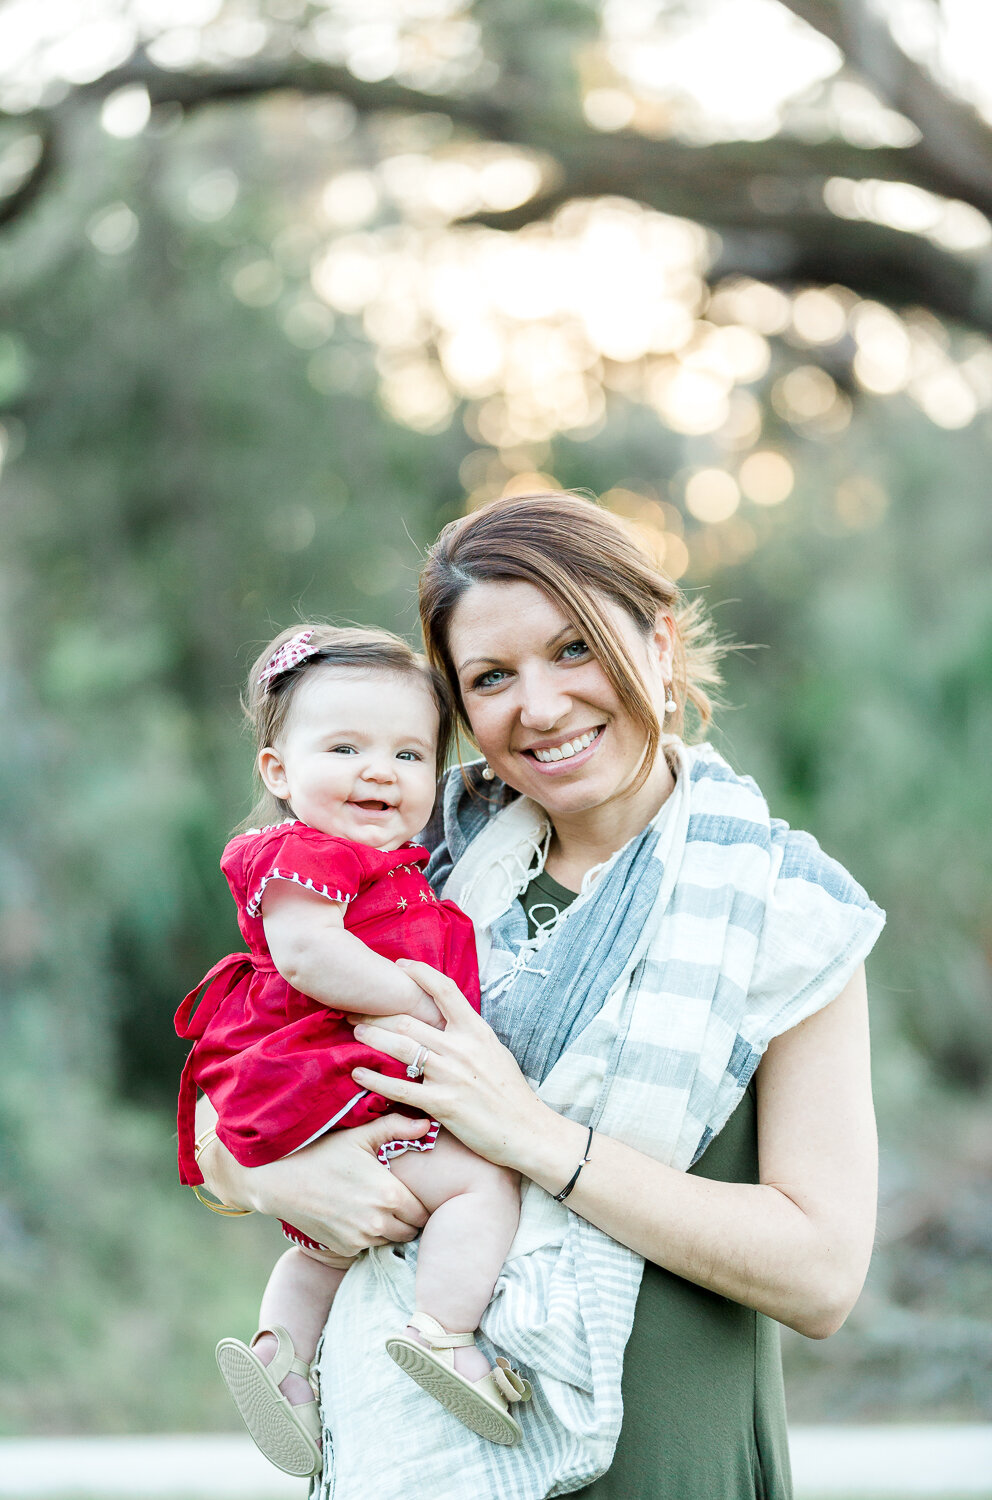 Mommy and me Holiday themed photoshoot in Nocatee-s 20 mile park